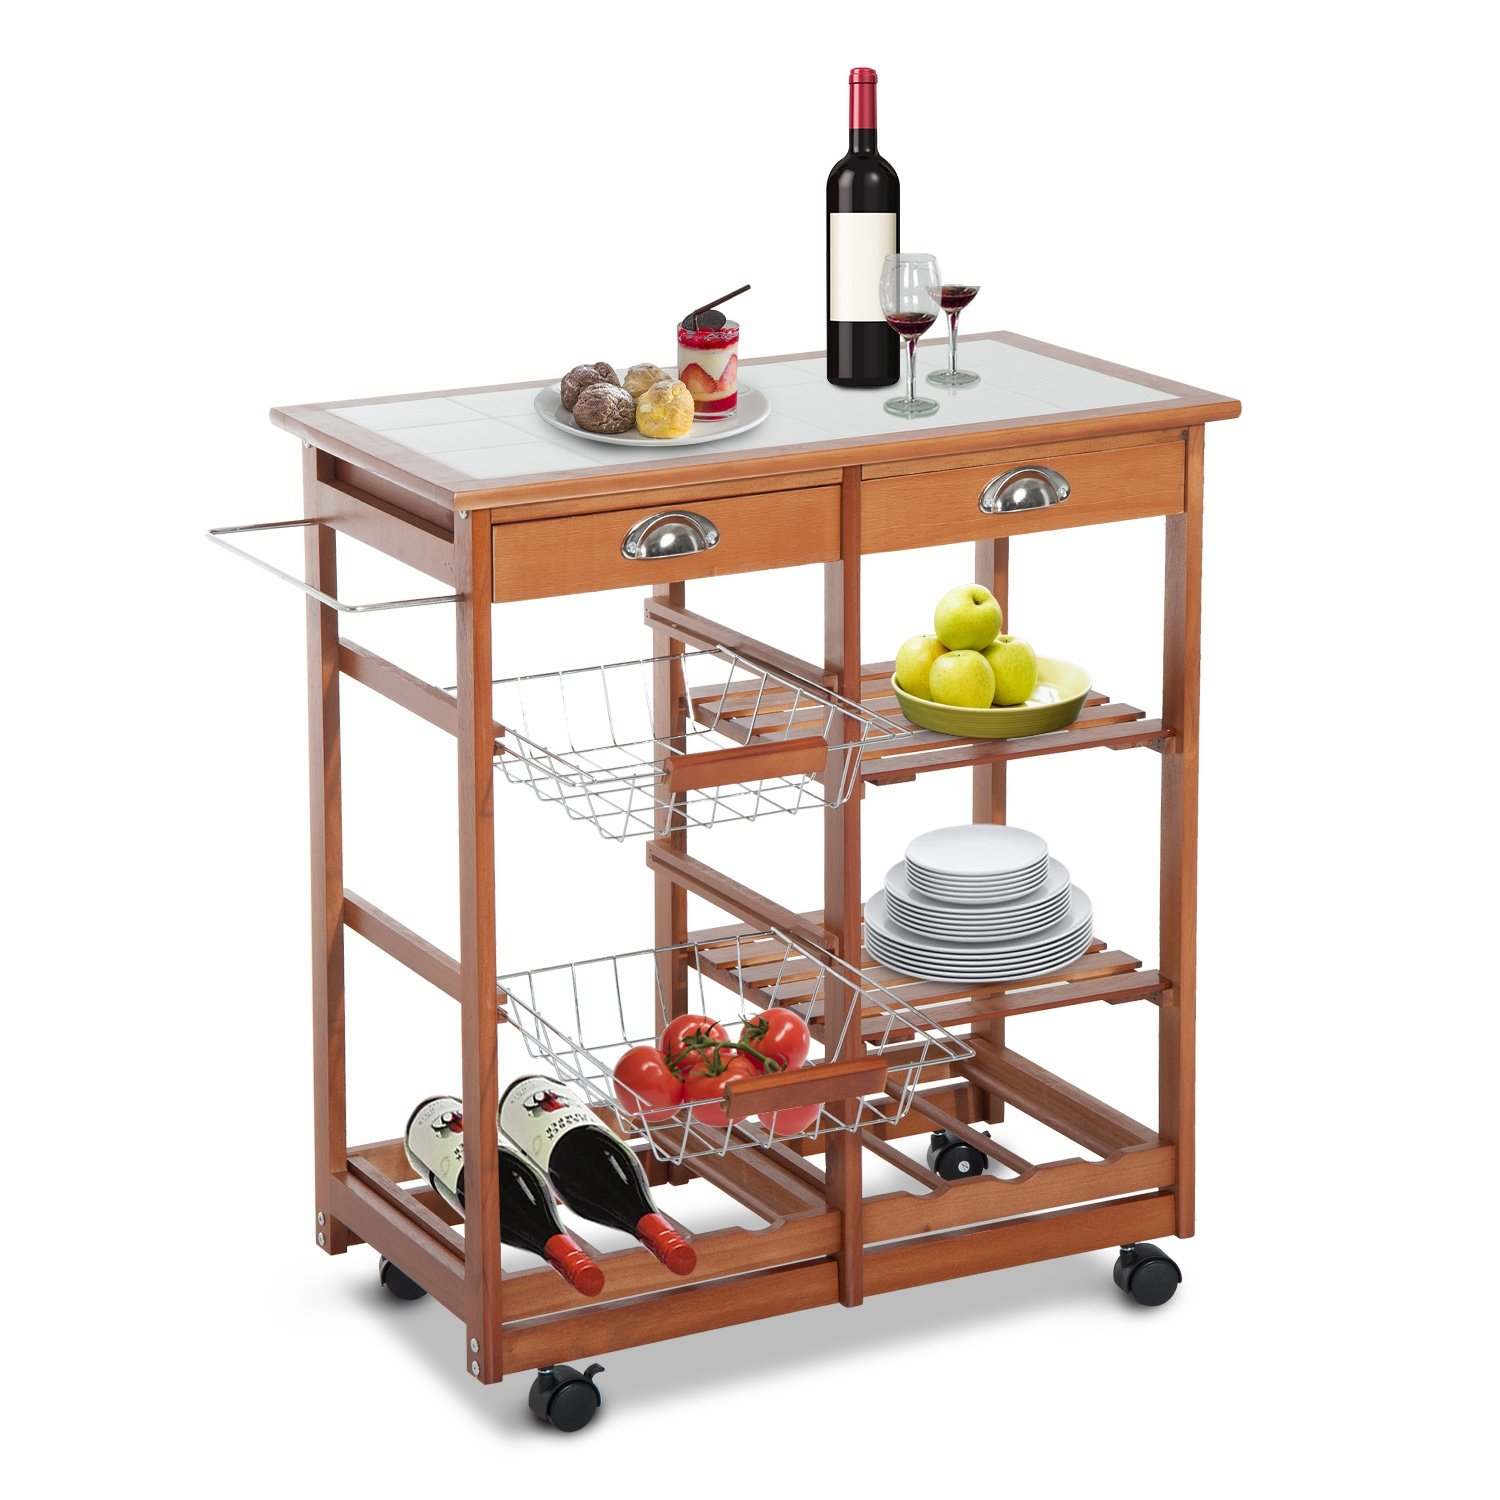 Kitchen Trolley Cart | Amazon Com Homcom Rolling Tile Top Wooden Kitchen Trolley